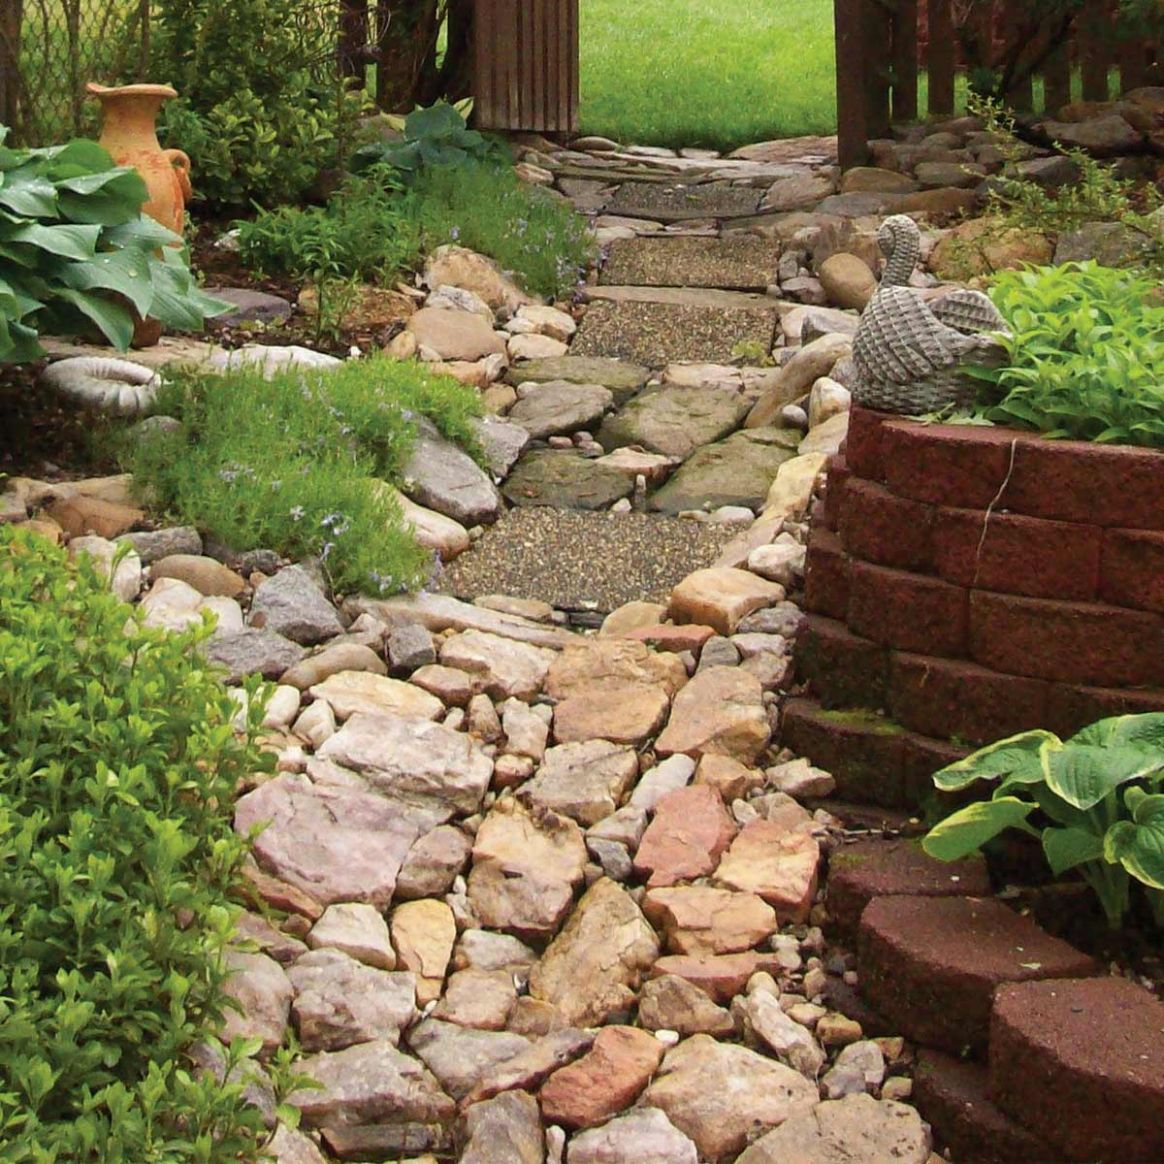 9 Common Lawn Problems and How to Fix Them | Family Handyman - backyard ideas to cover dirt